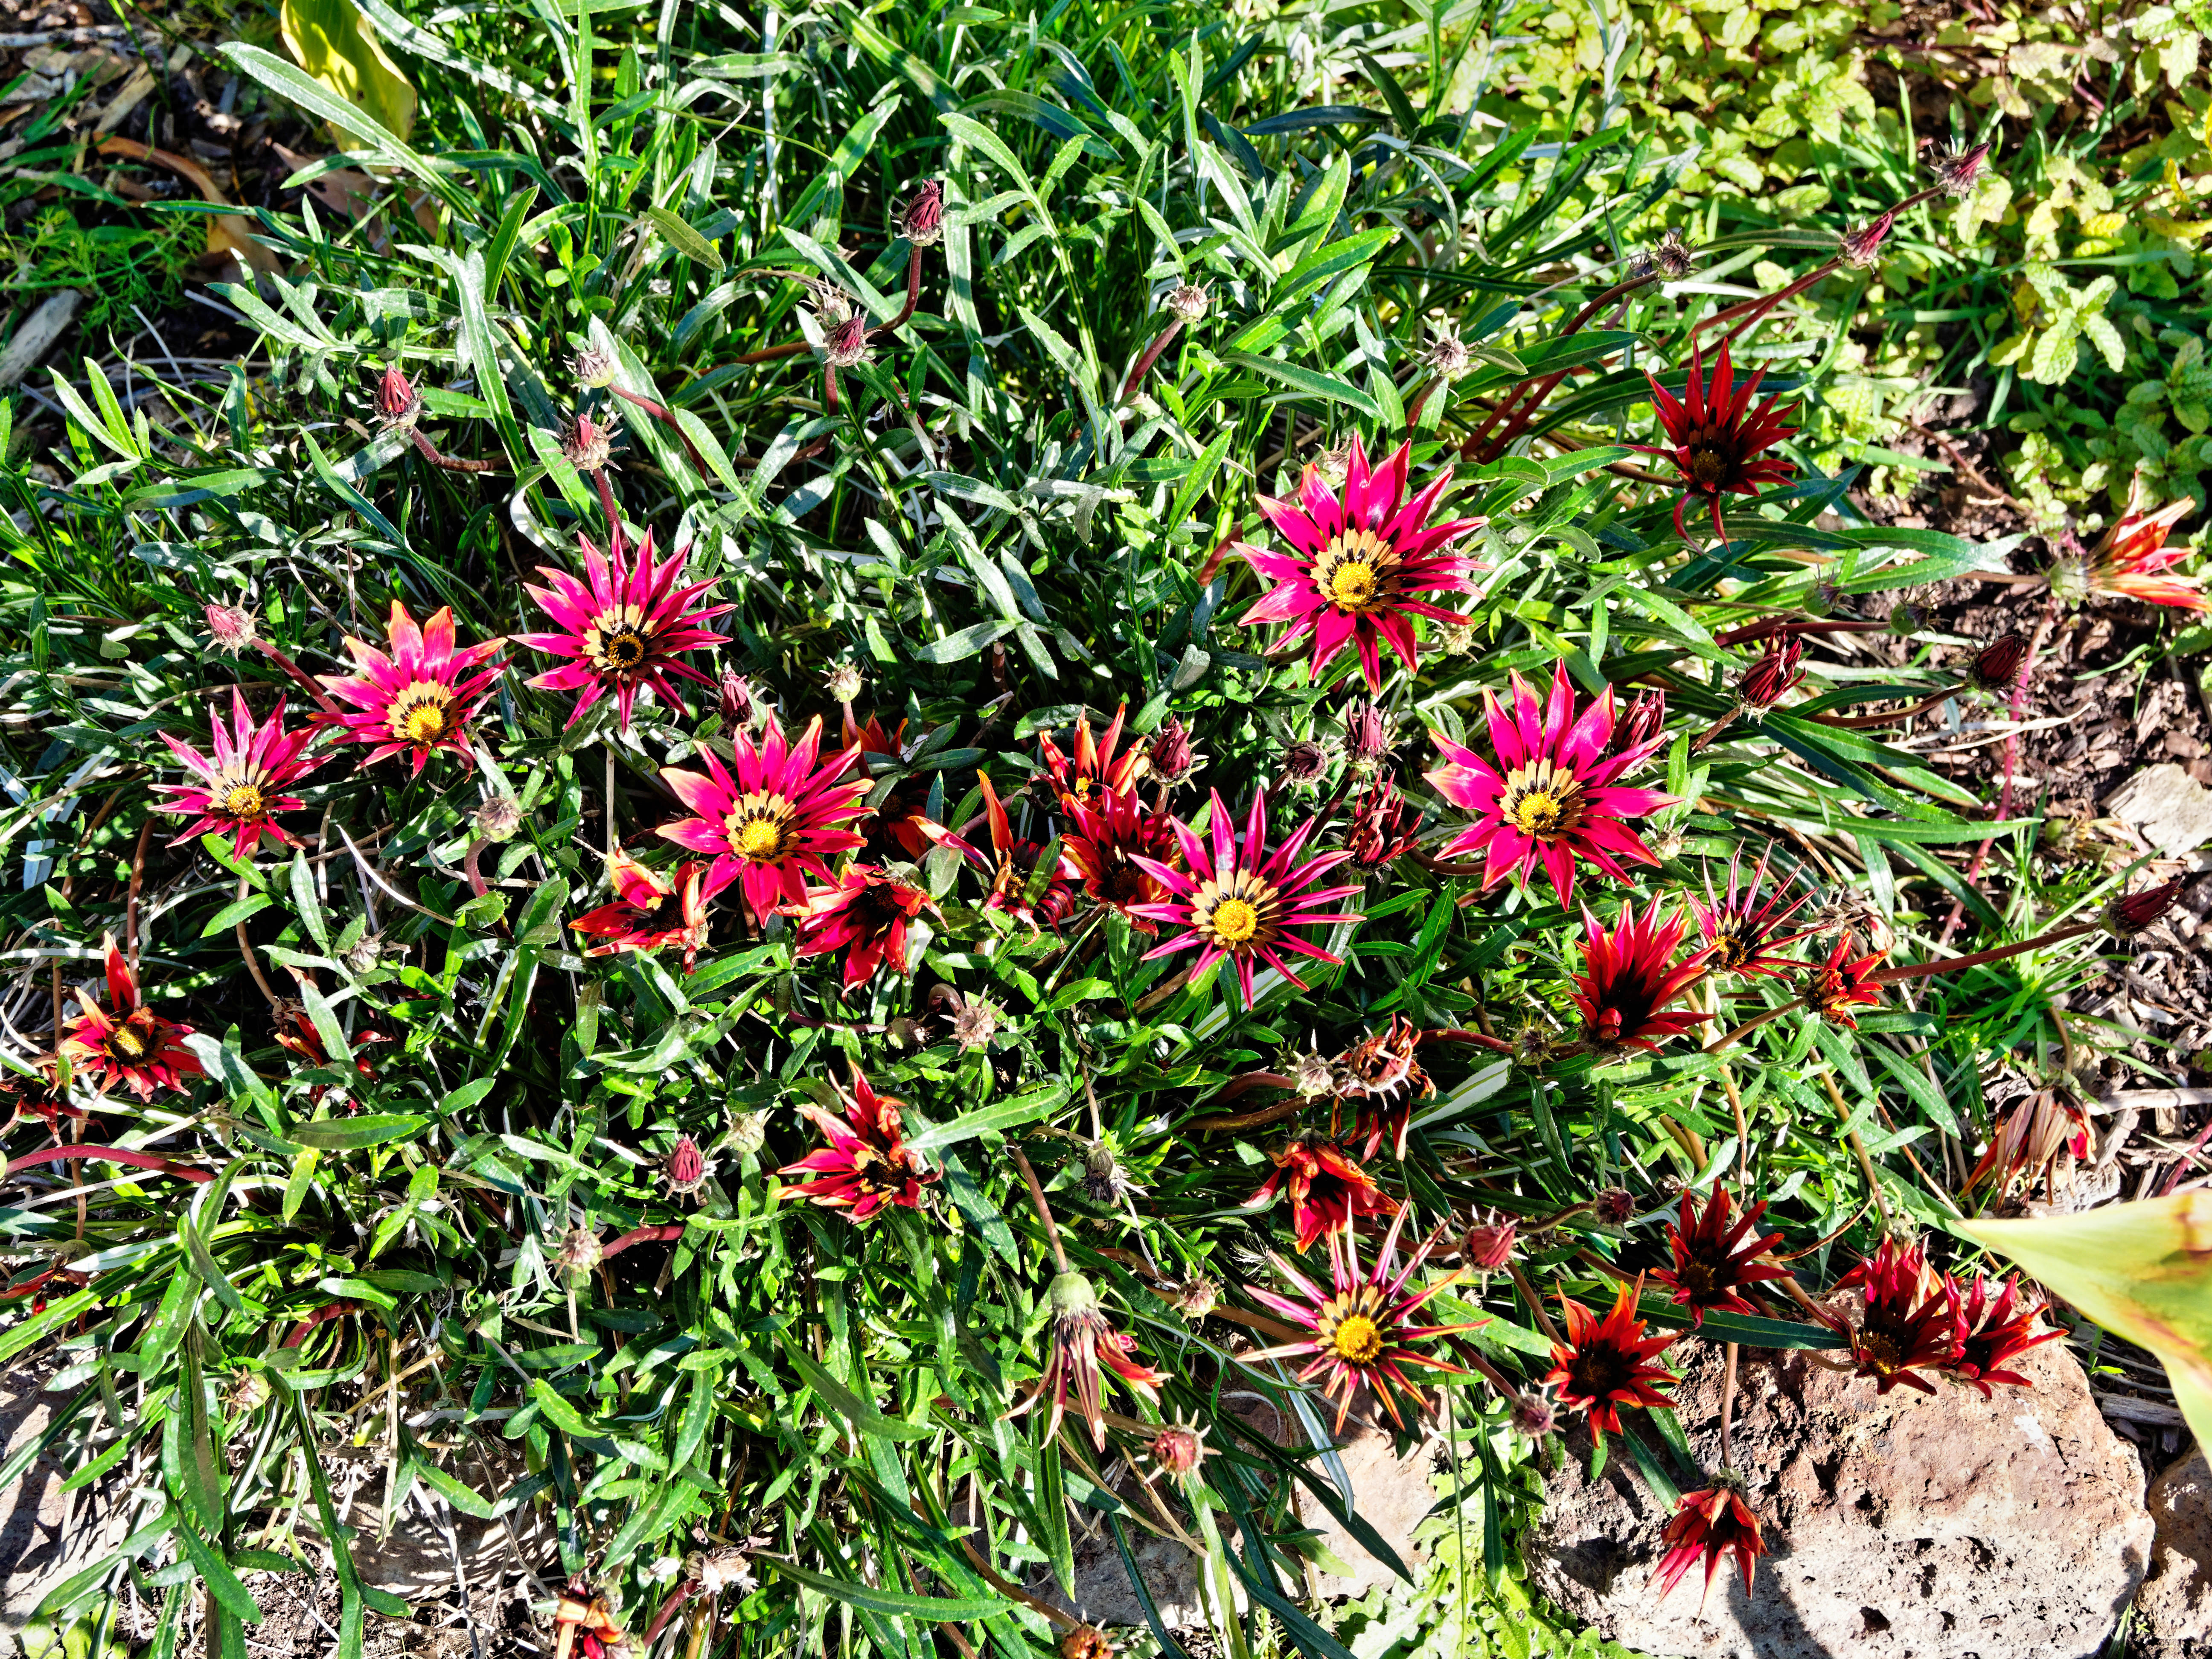 This should be Gazania.jpeg.  Is it missing?